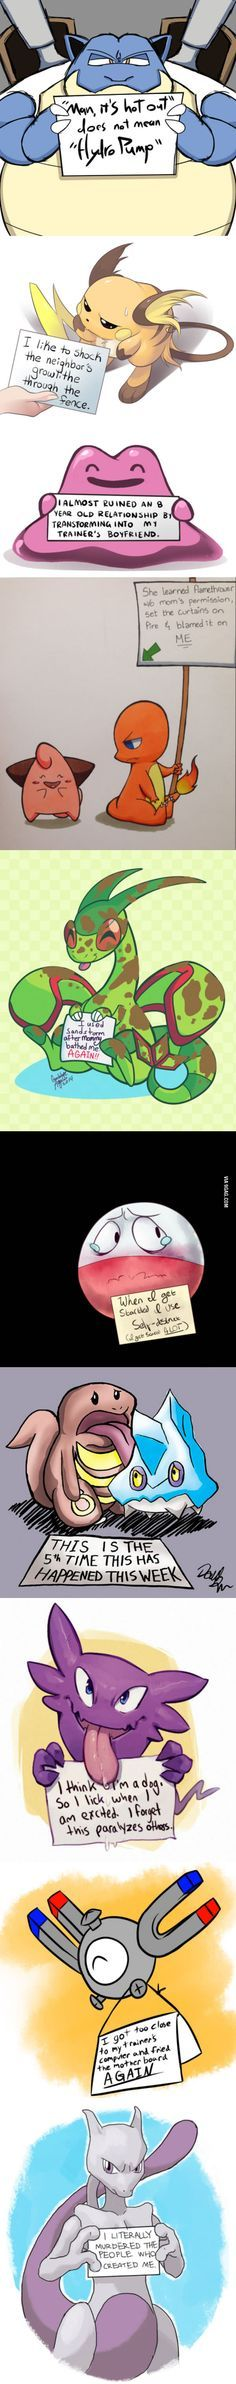 Pokemon Shaming - 9GAG